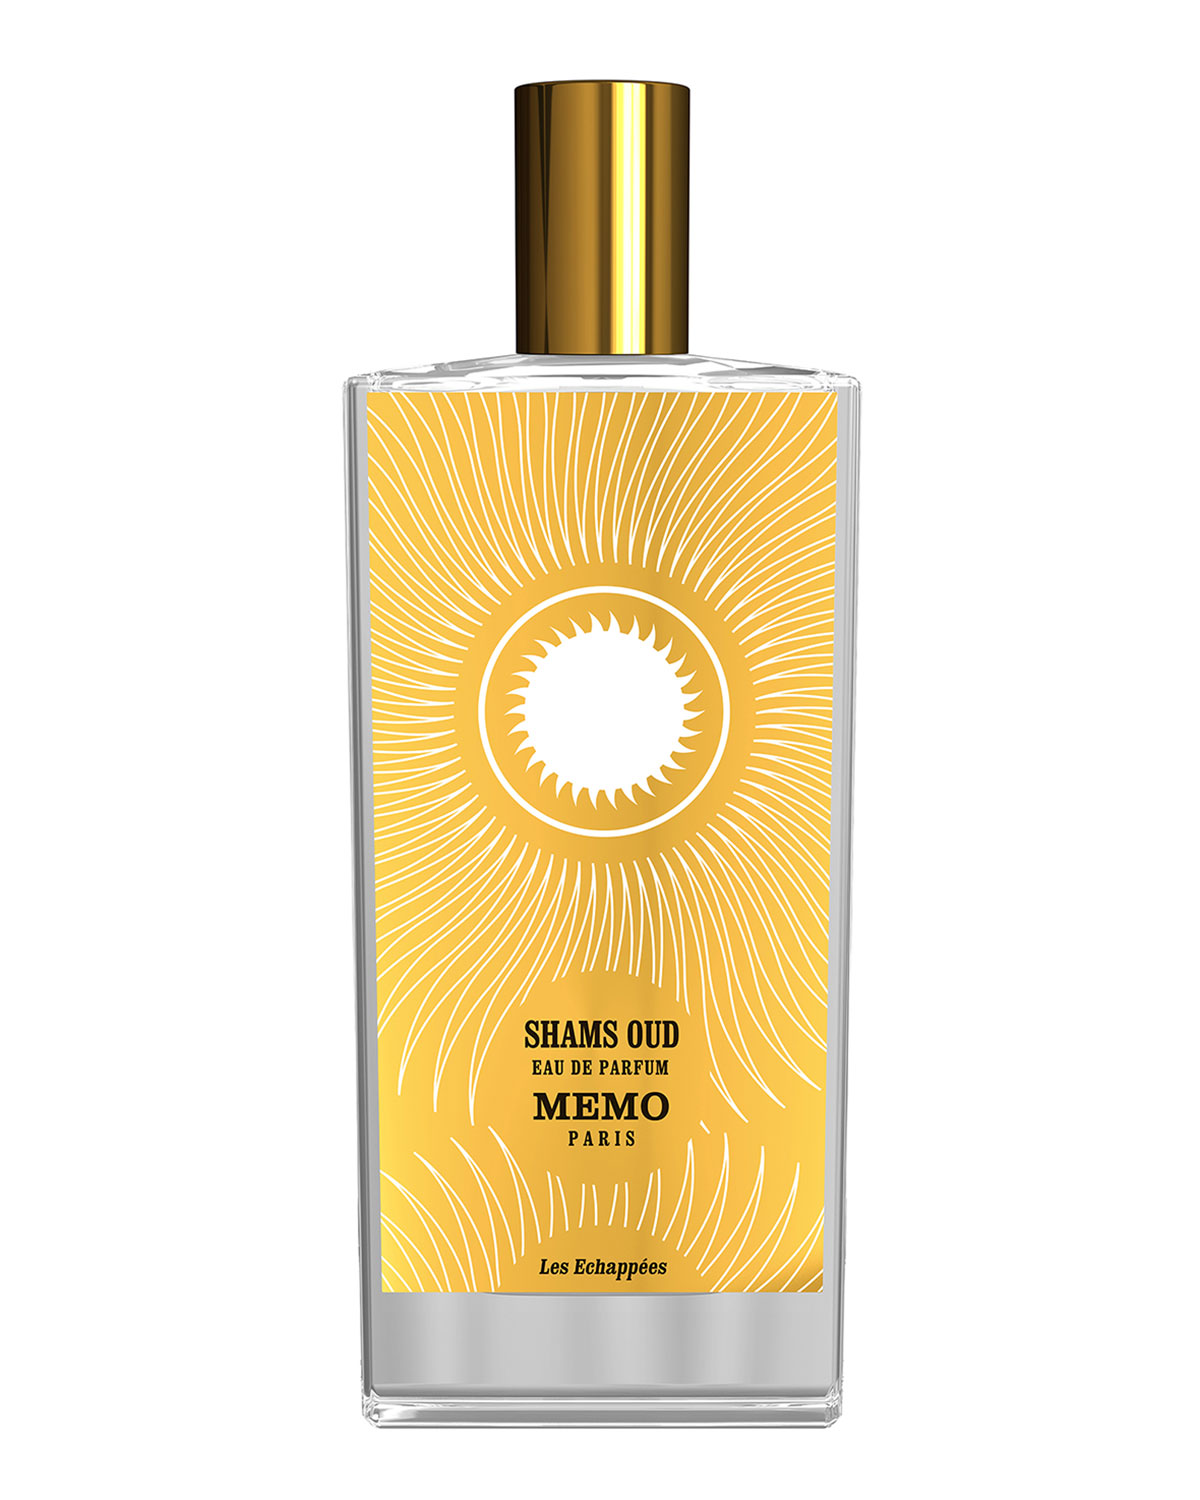 Memo Paris 2.5 oz. Shams Oud Eau de Parfum Spray